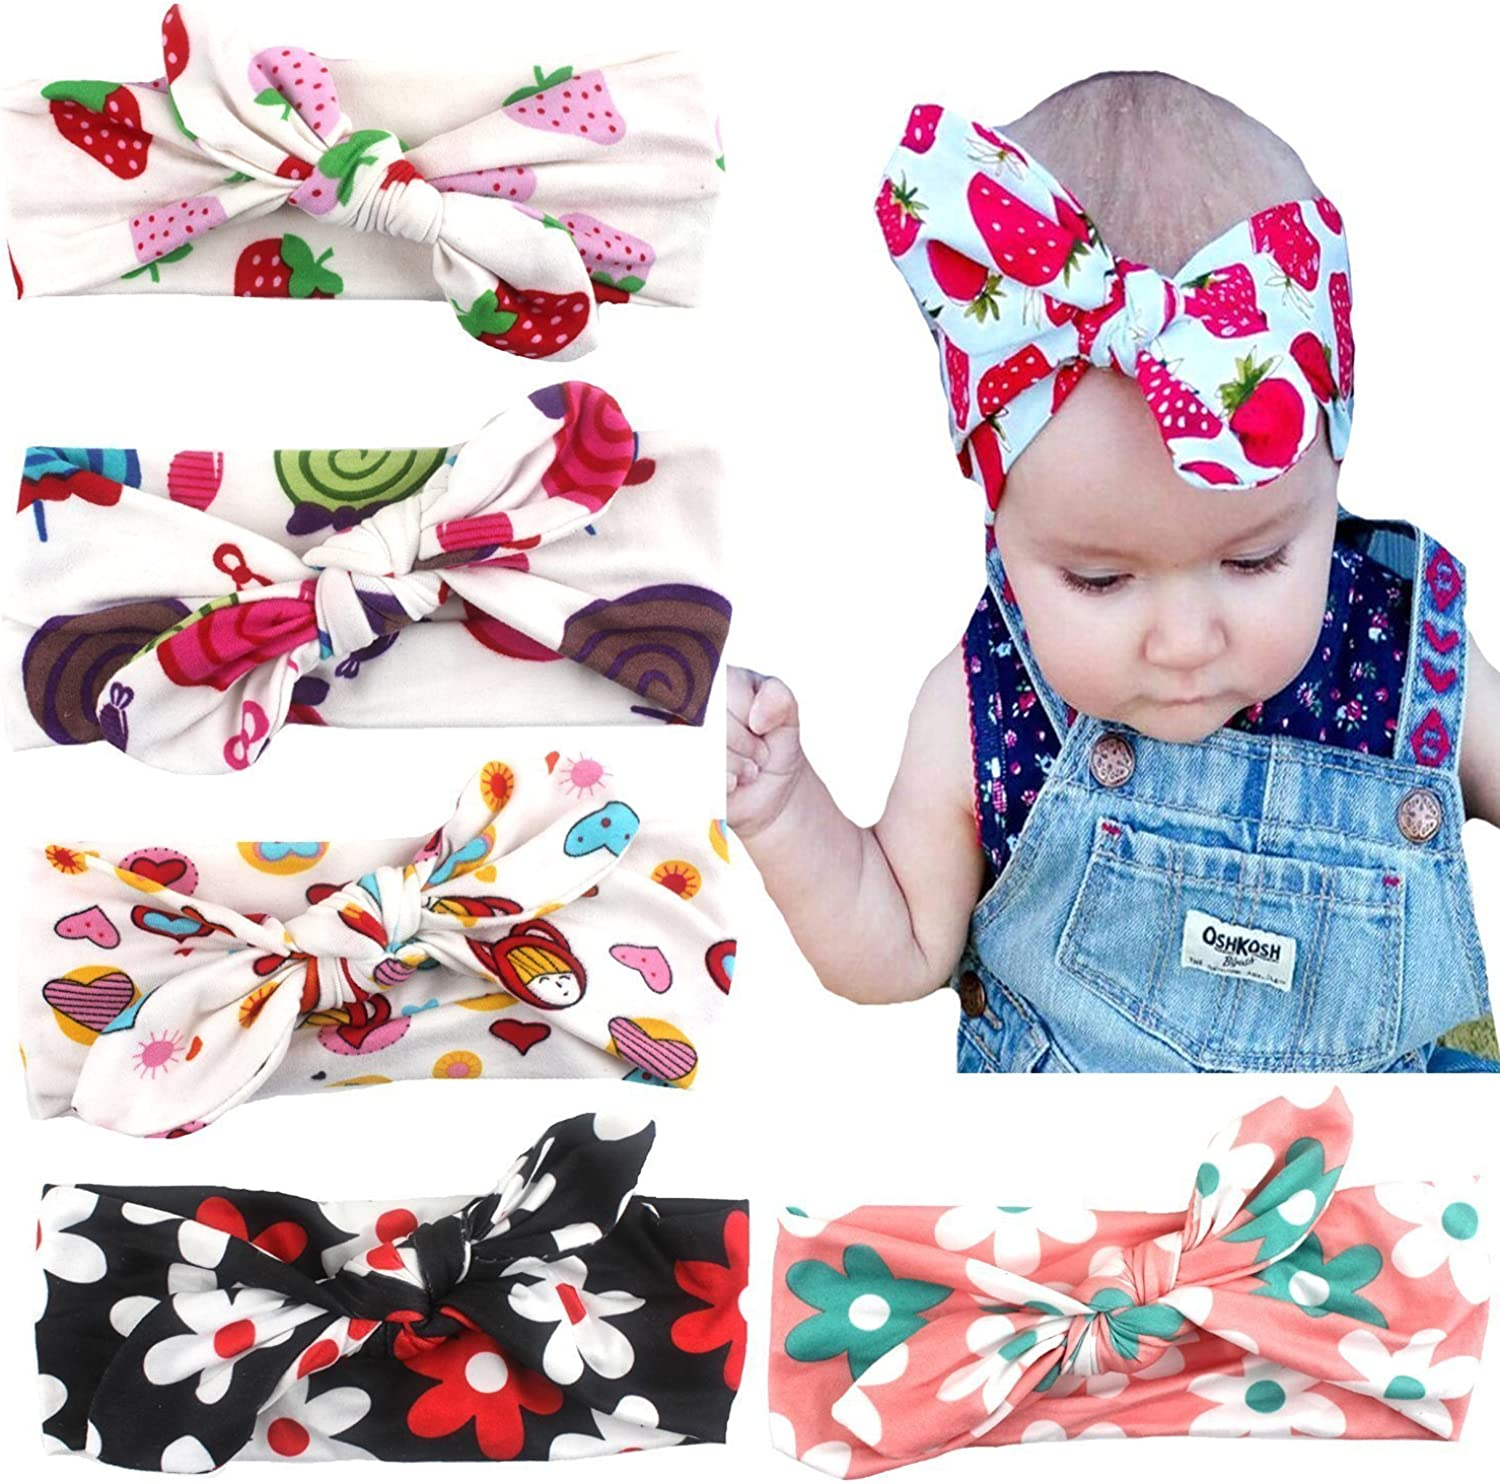 American Trends Baby Girl Newest Turban Headband Head Wrap Knotted Hair Band E-6 Pairs-Mix Color